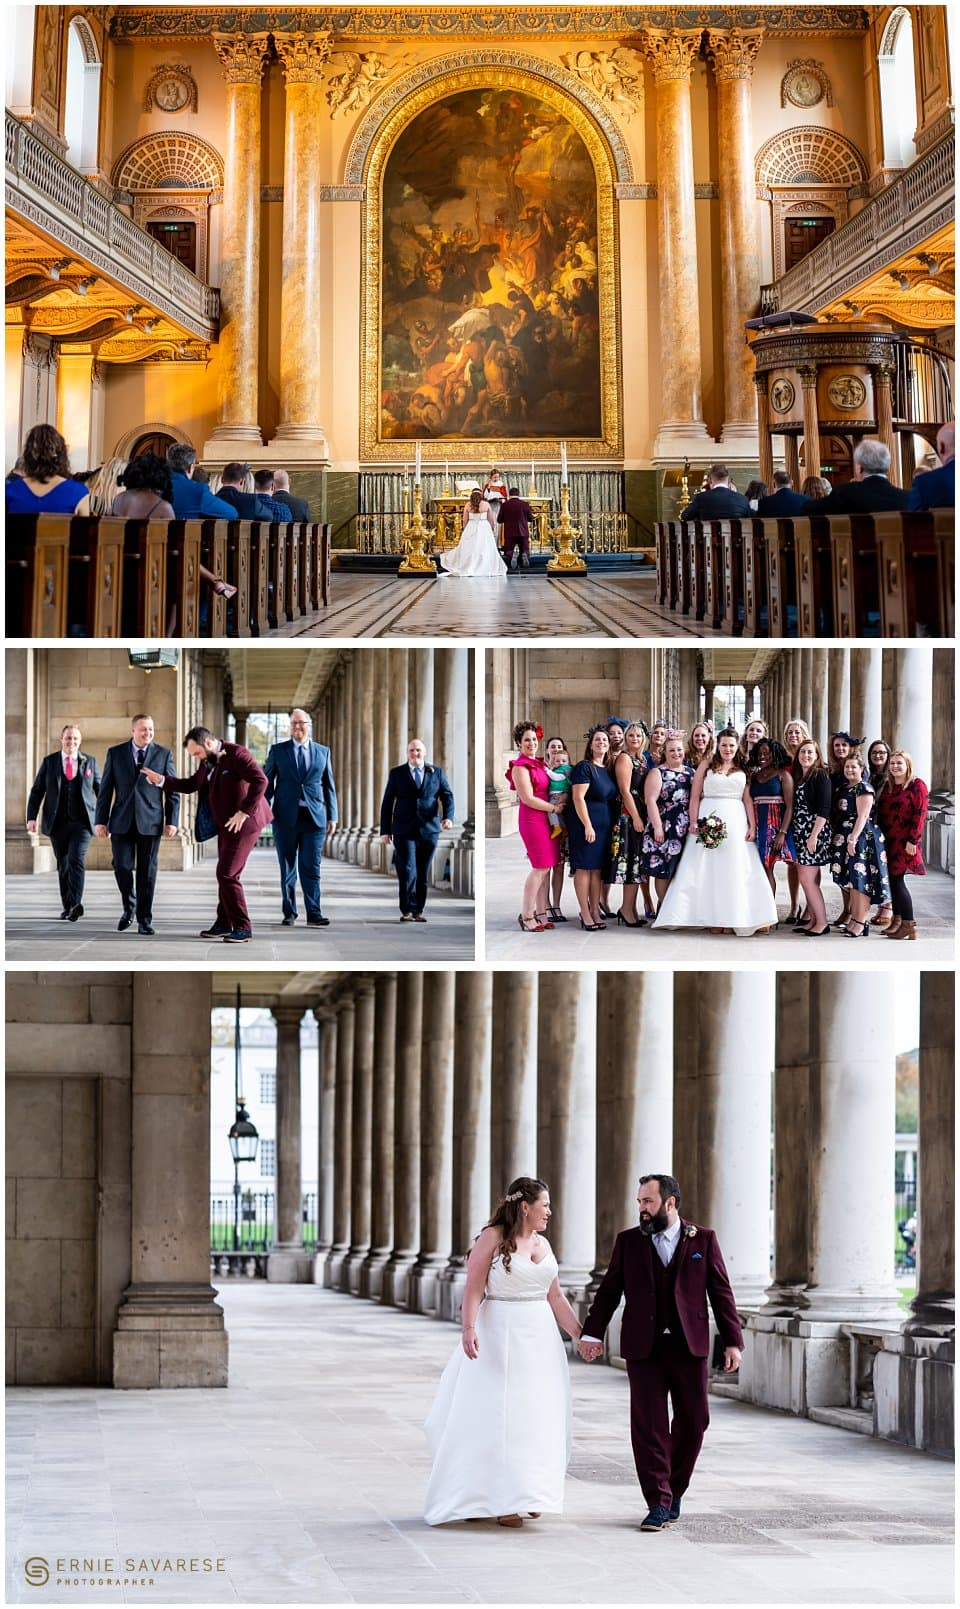 Ernie Savarese London Wedding Photographer